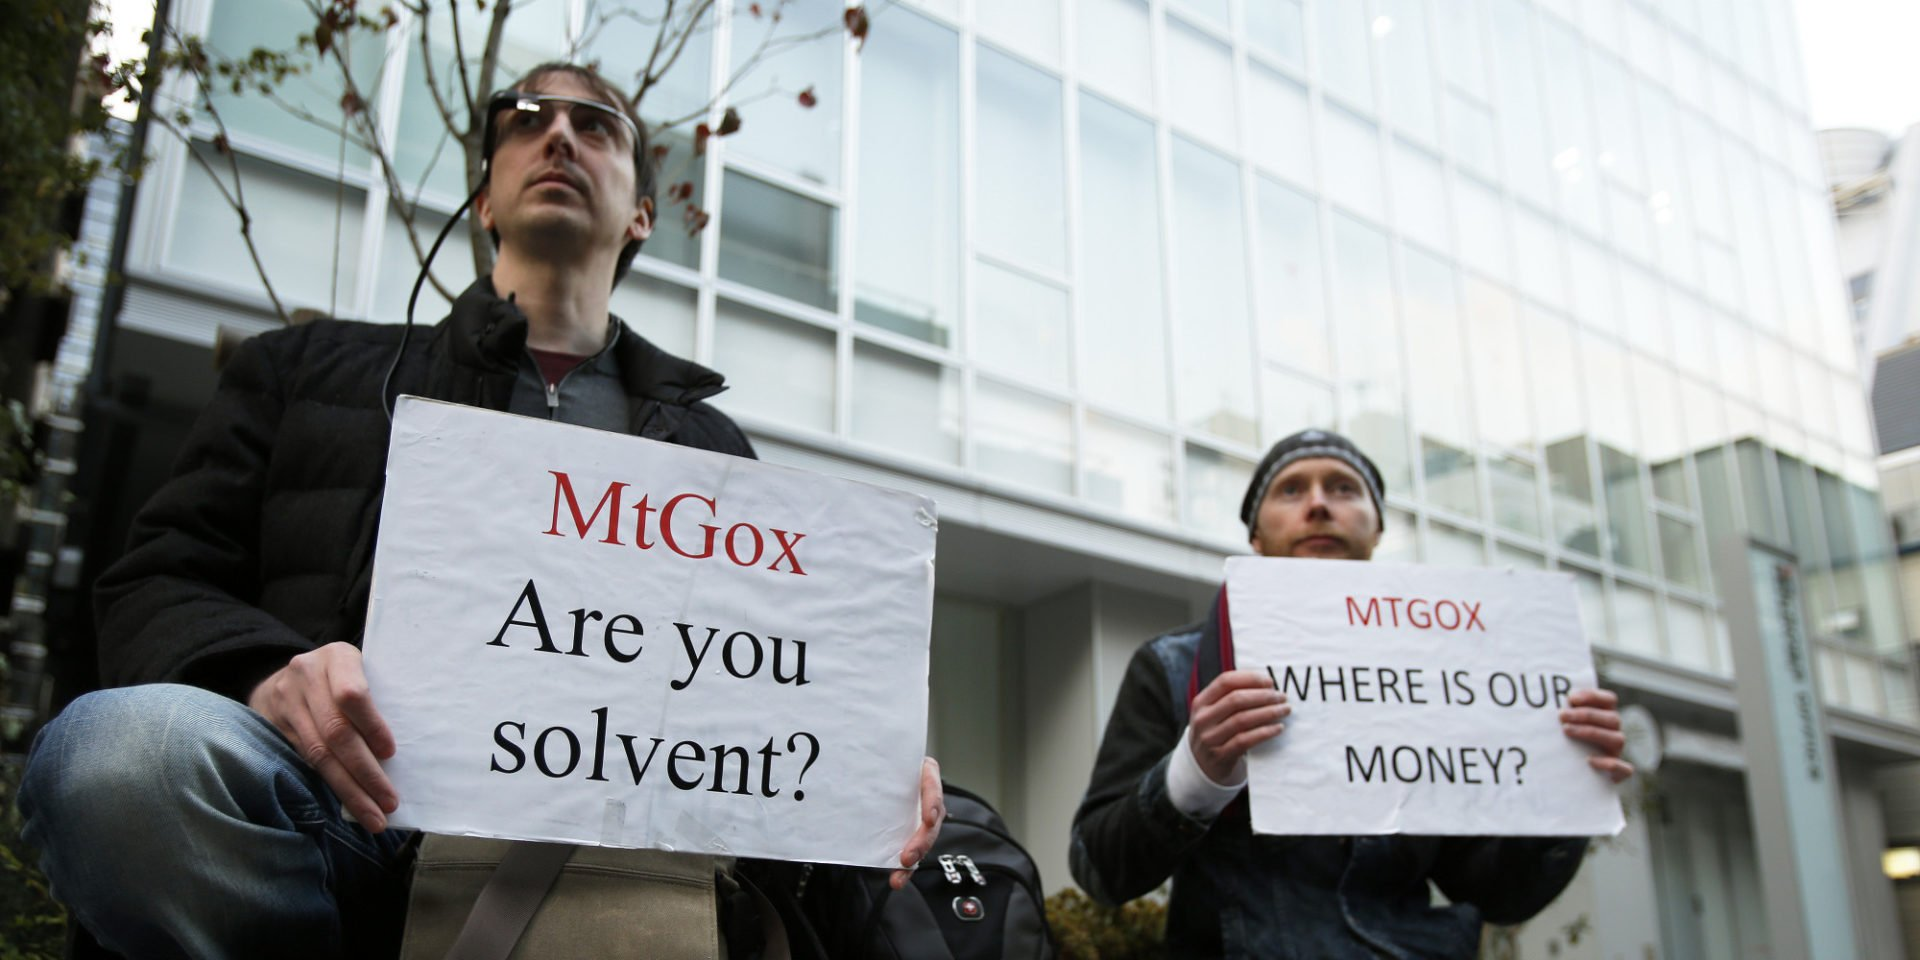 Mt Gox Enters Civil Rehabilitation: Victims Will be Paid in Crypto. 13